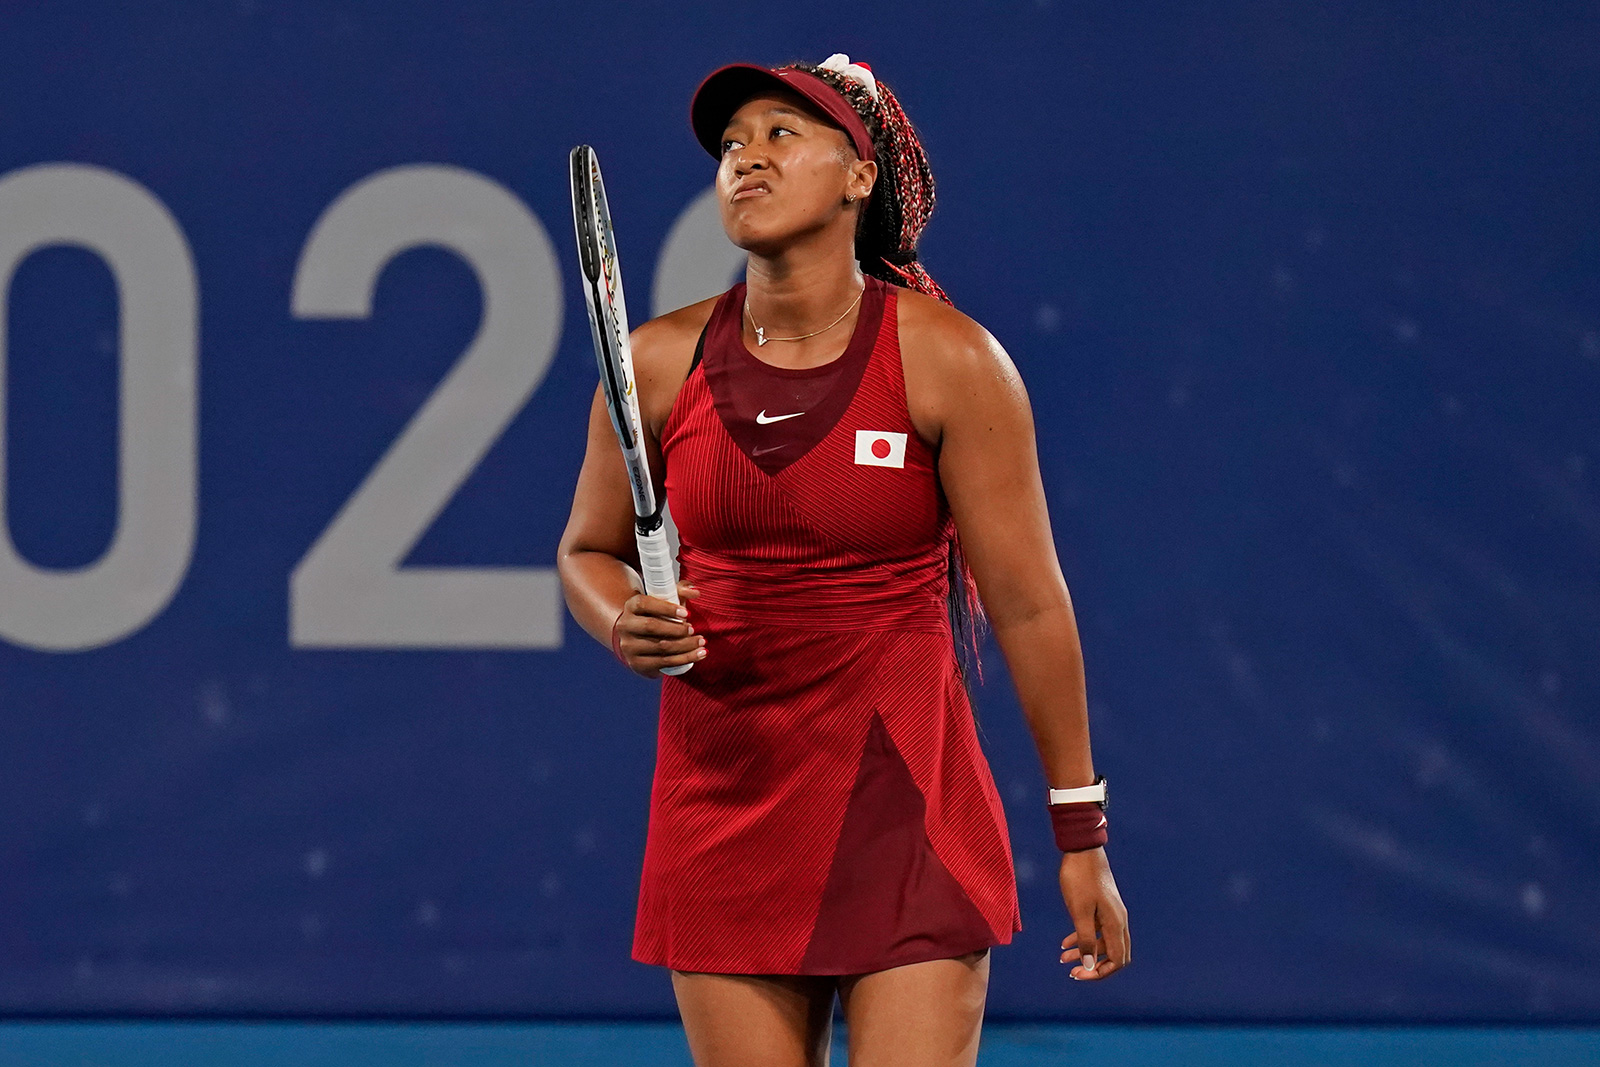 Japan's Naomi Osaka, of Japan reacts after losing a point to Marketa Vondrousova, of the Czech Republic, during a tennis match on Tuesday.